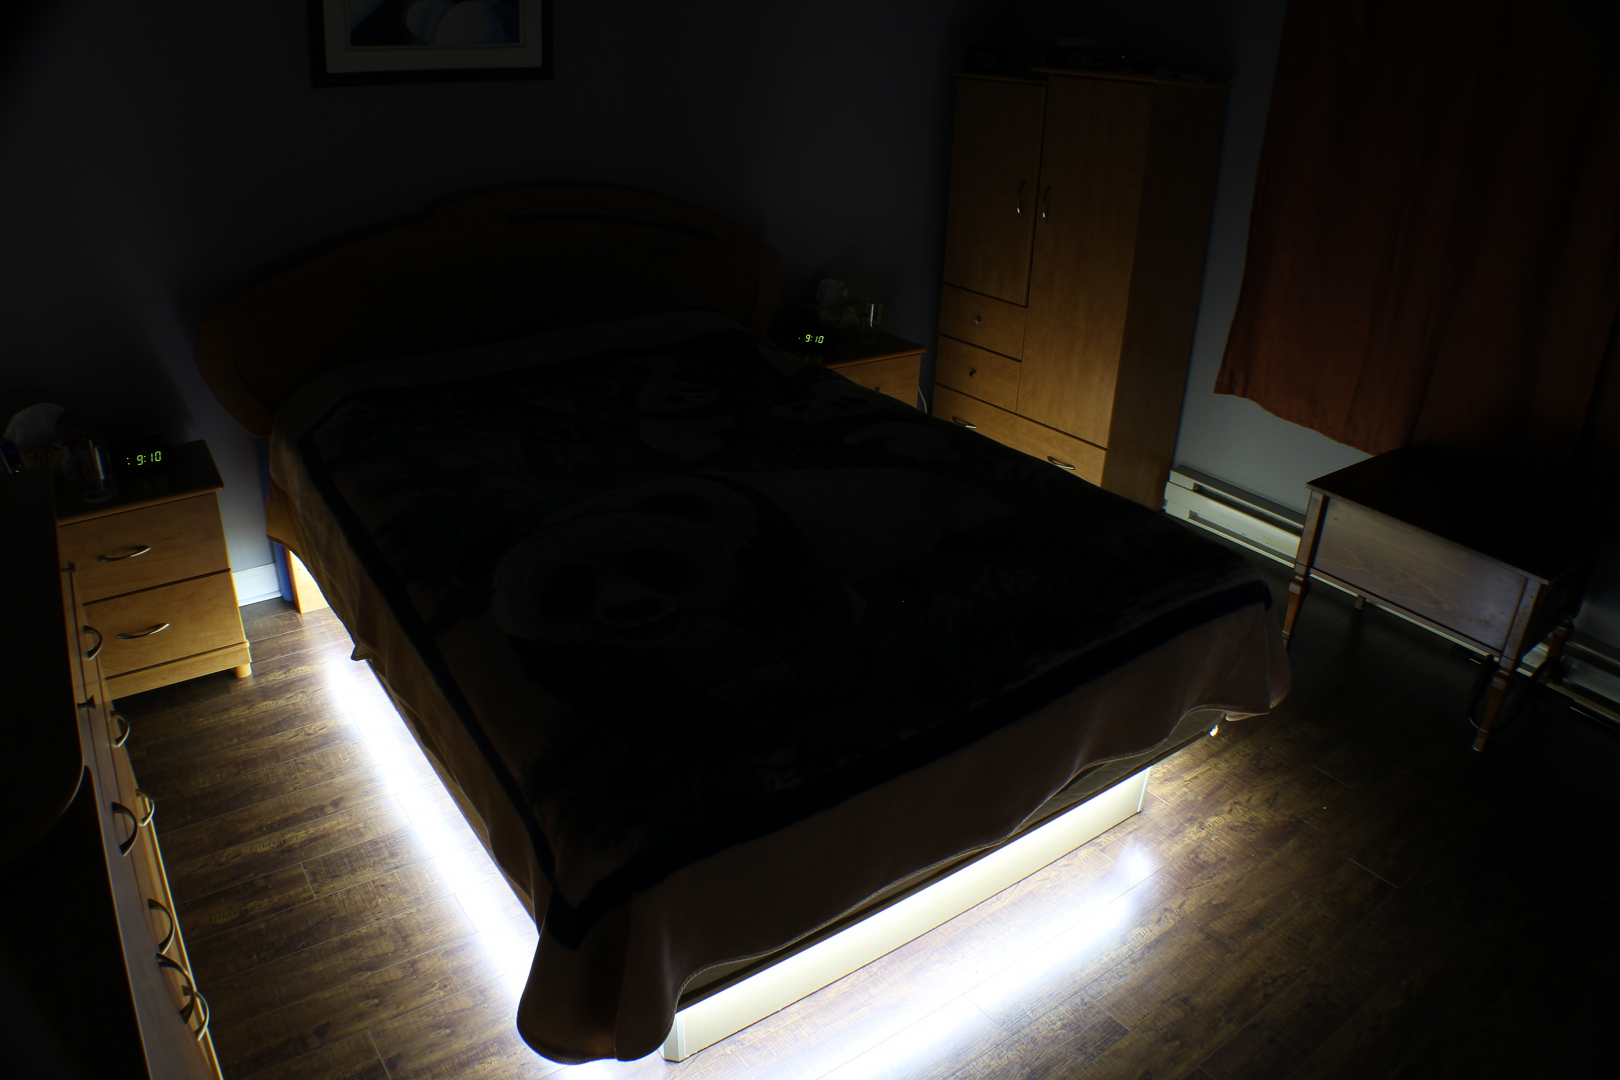 DIY Bedroom under the bed led lighting | end2end zone